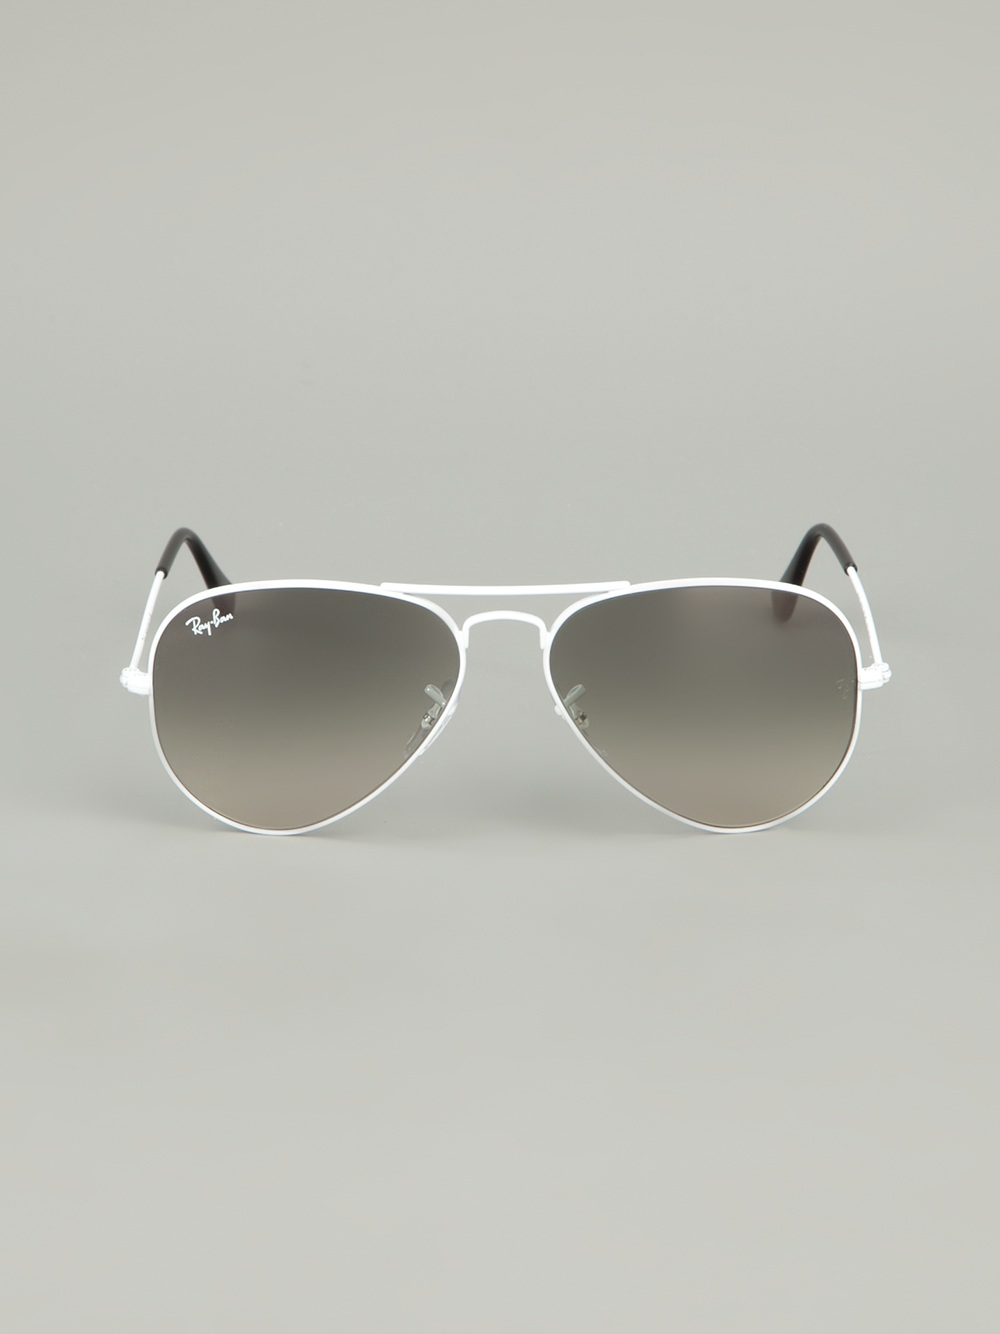 ray bans sunglasses white  ray ban sunglasses white